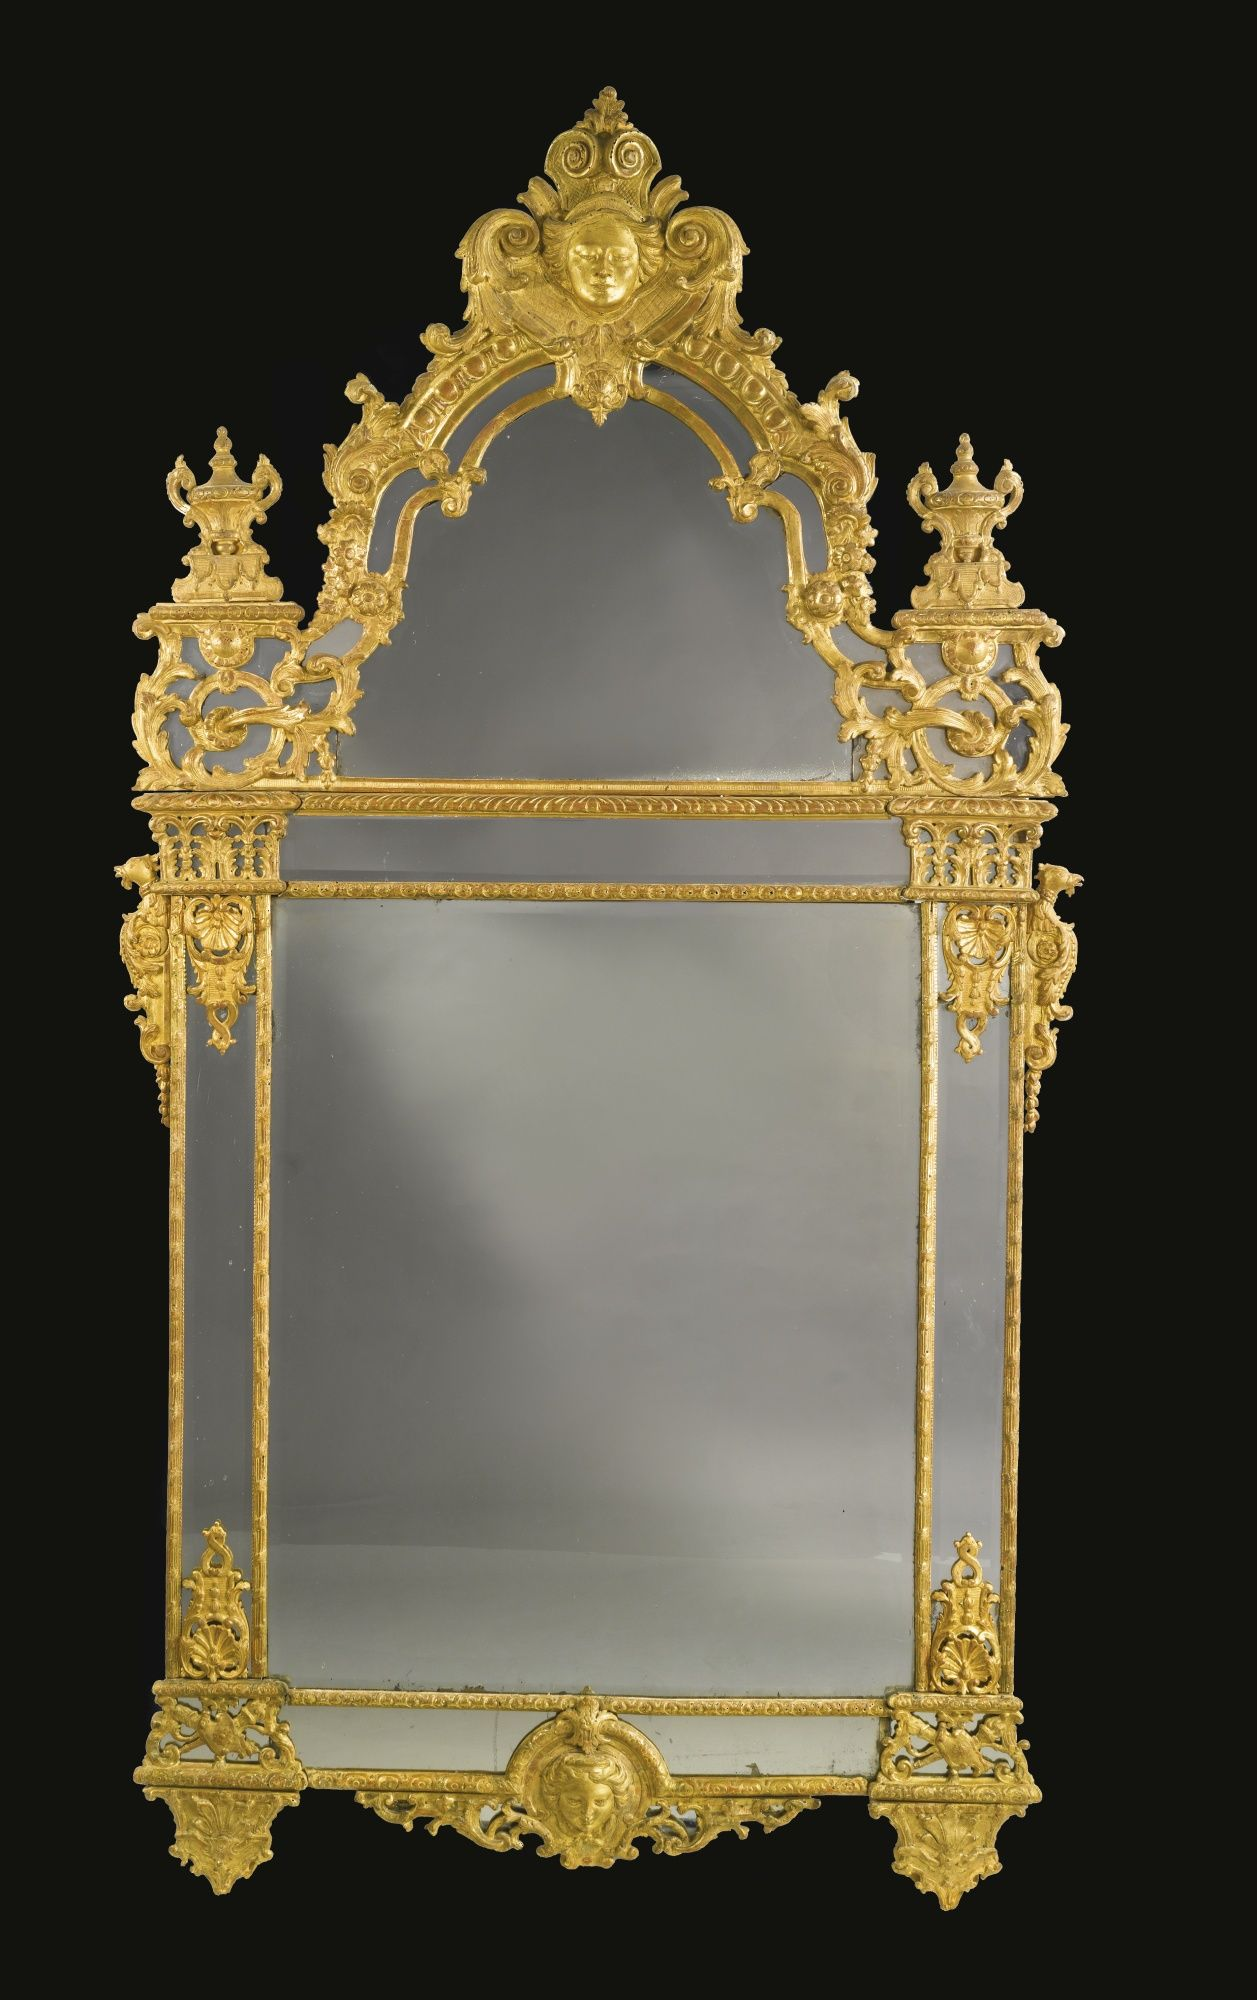 c1720 A RÉGENCE CARVED GILTWOOD MIRROR circa 1720 Estimate 20,000 — 30,000  USD LOT SOLD. 25,000 USD (Hammer Price with Buyer's Premium)